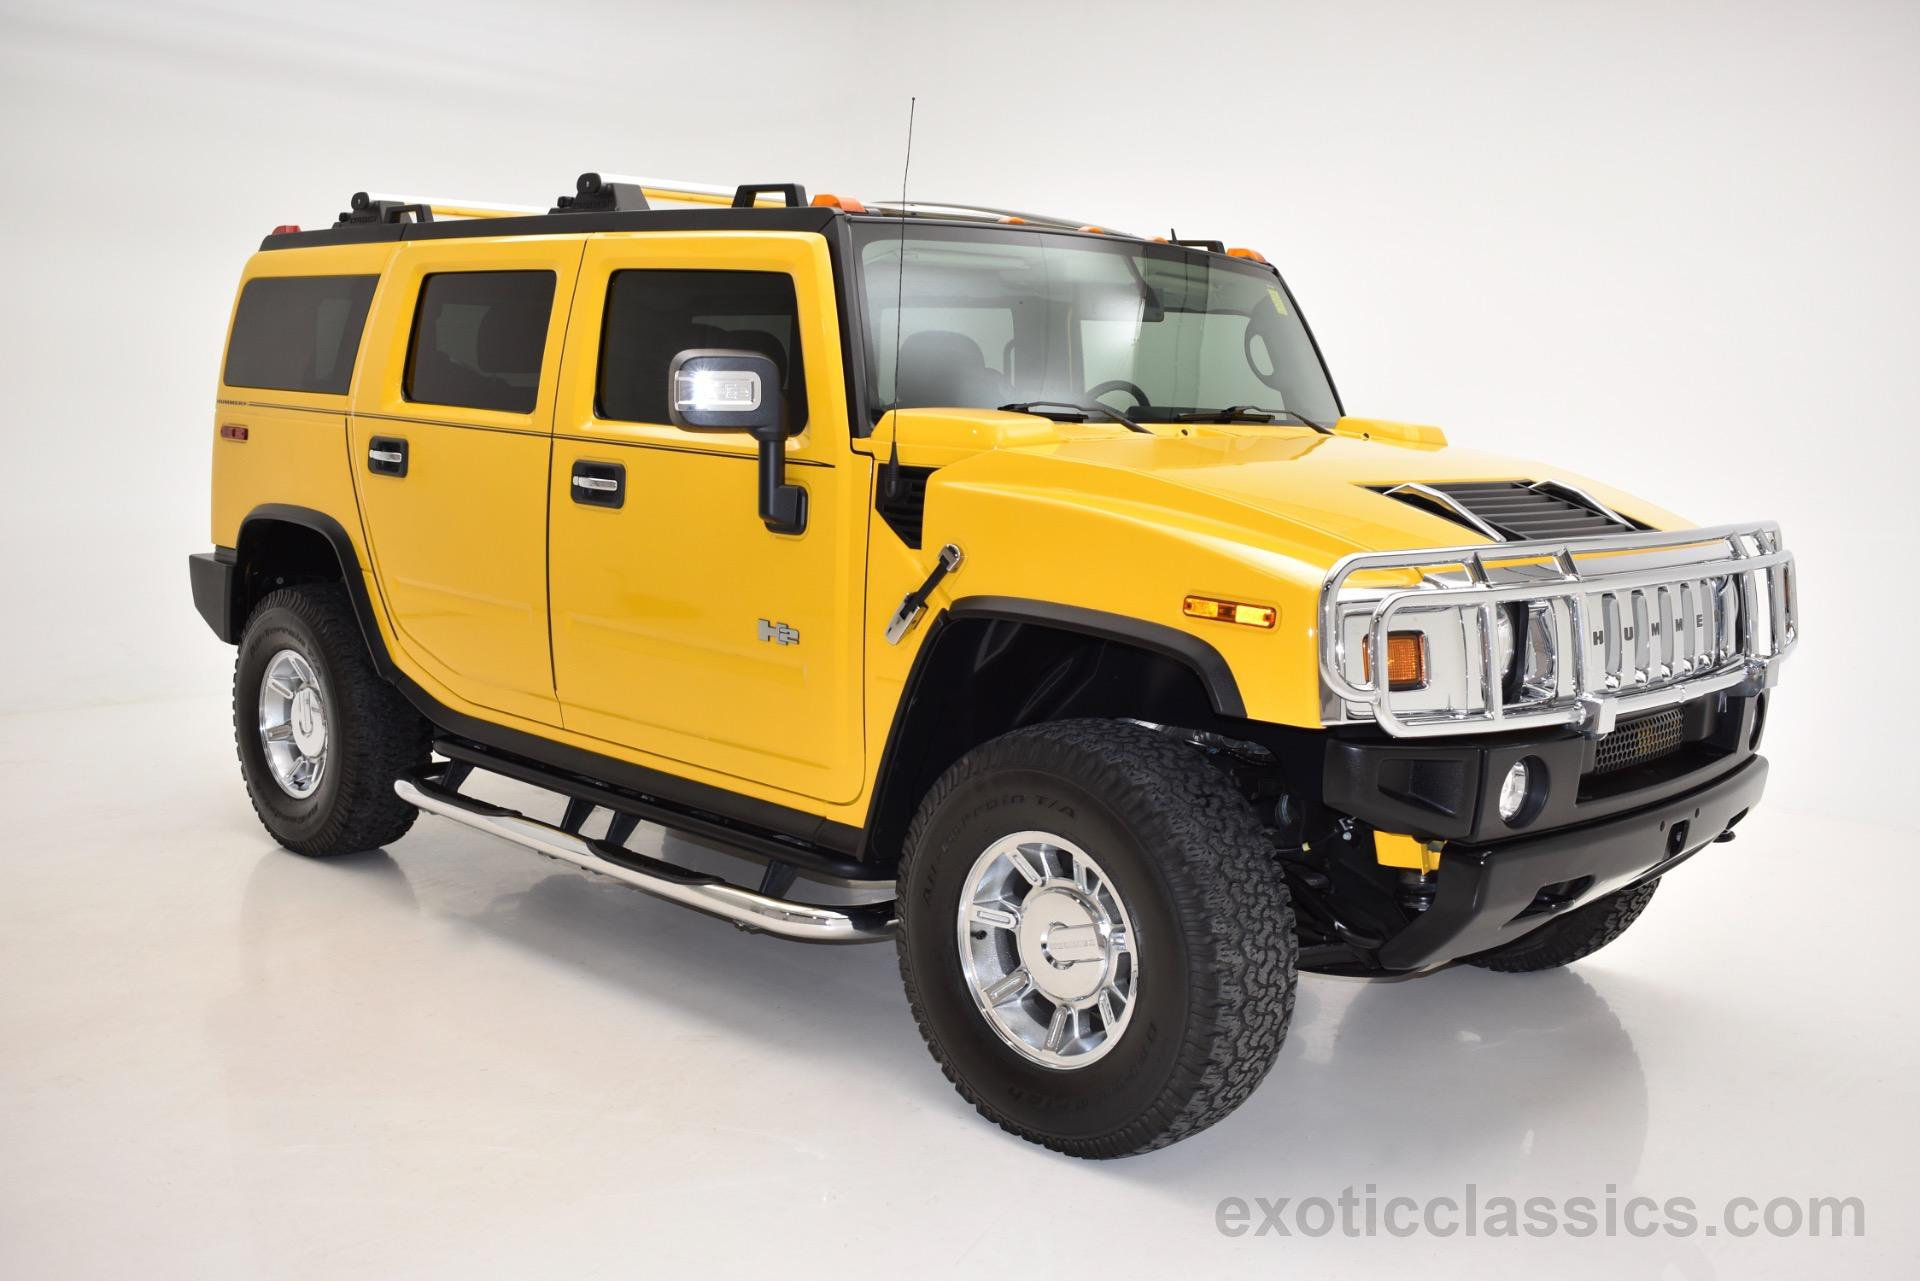 2007 HUMMER H2 SUV Exotic and Classic Car Dealership